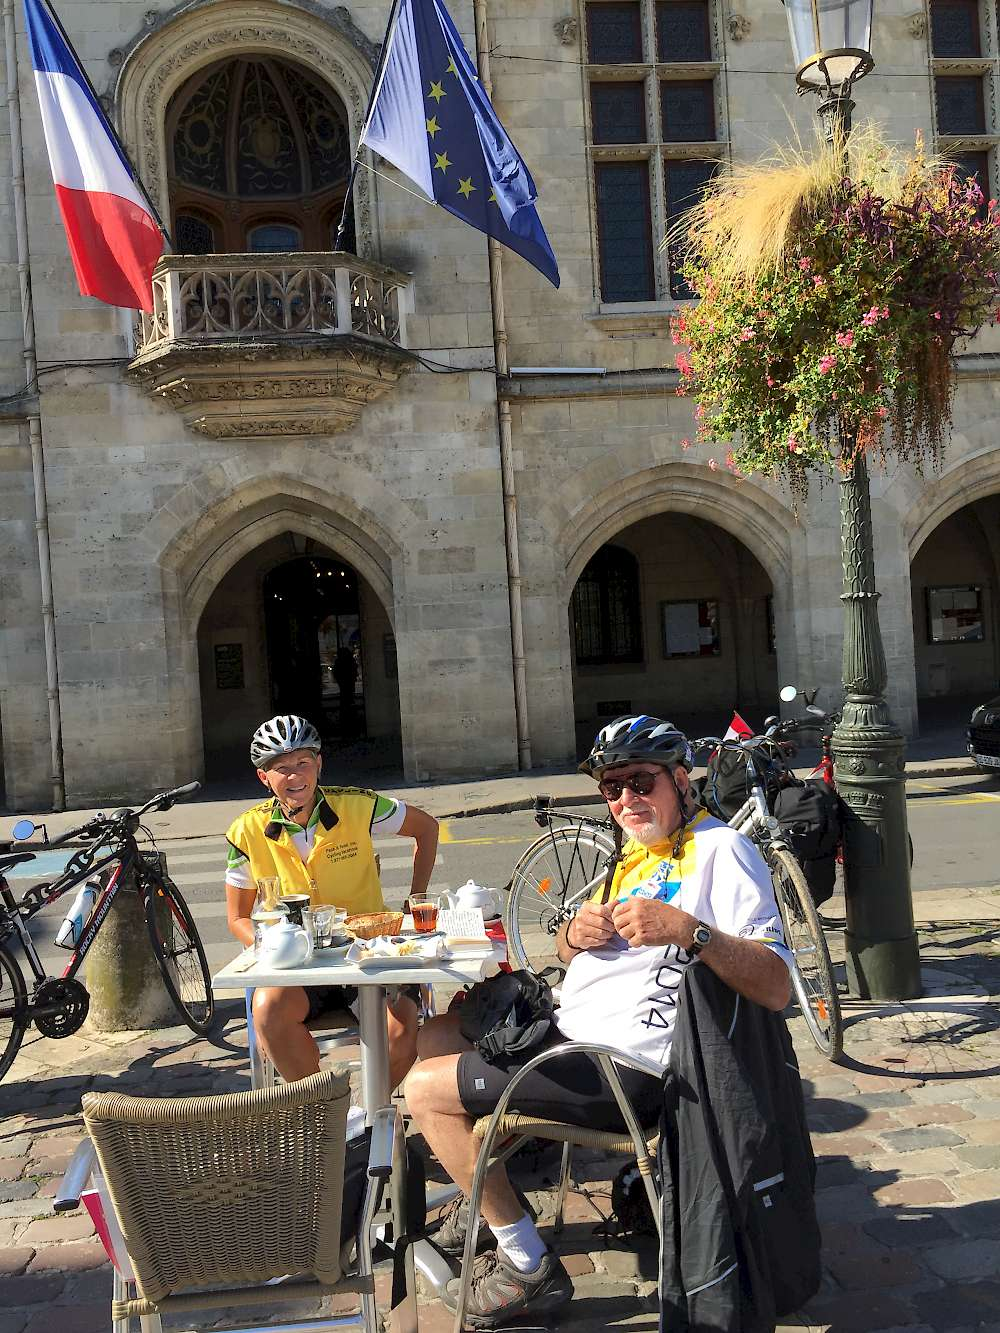 Libourne with another travelers